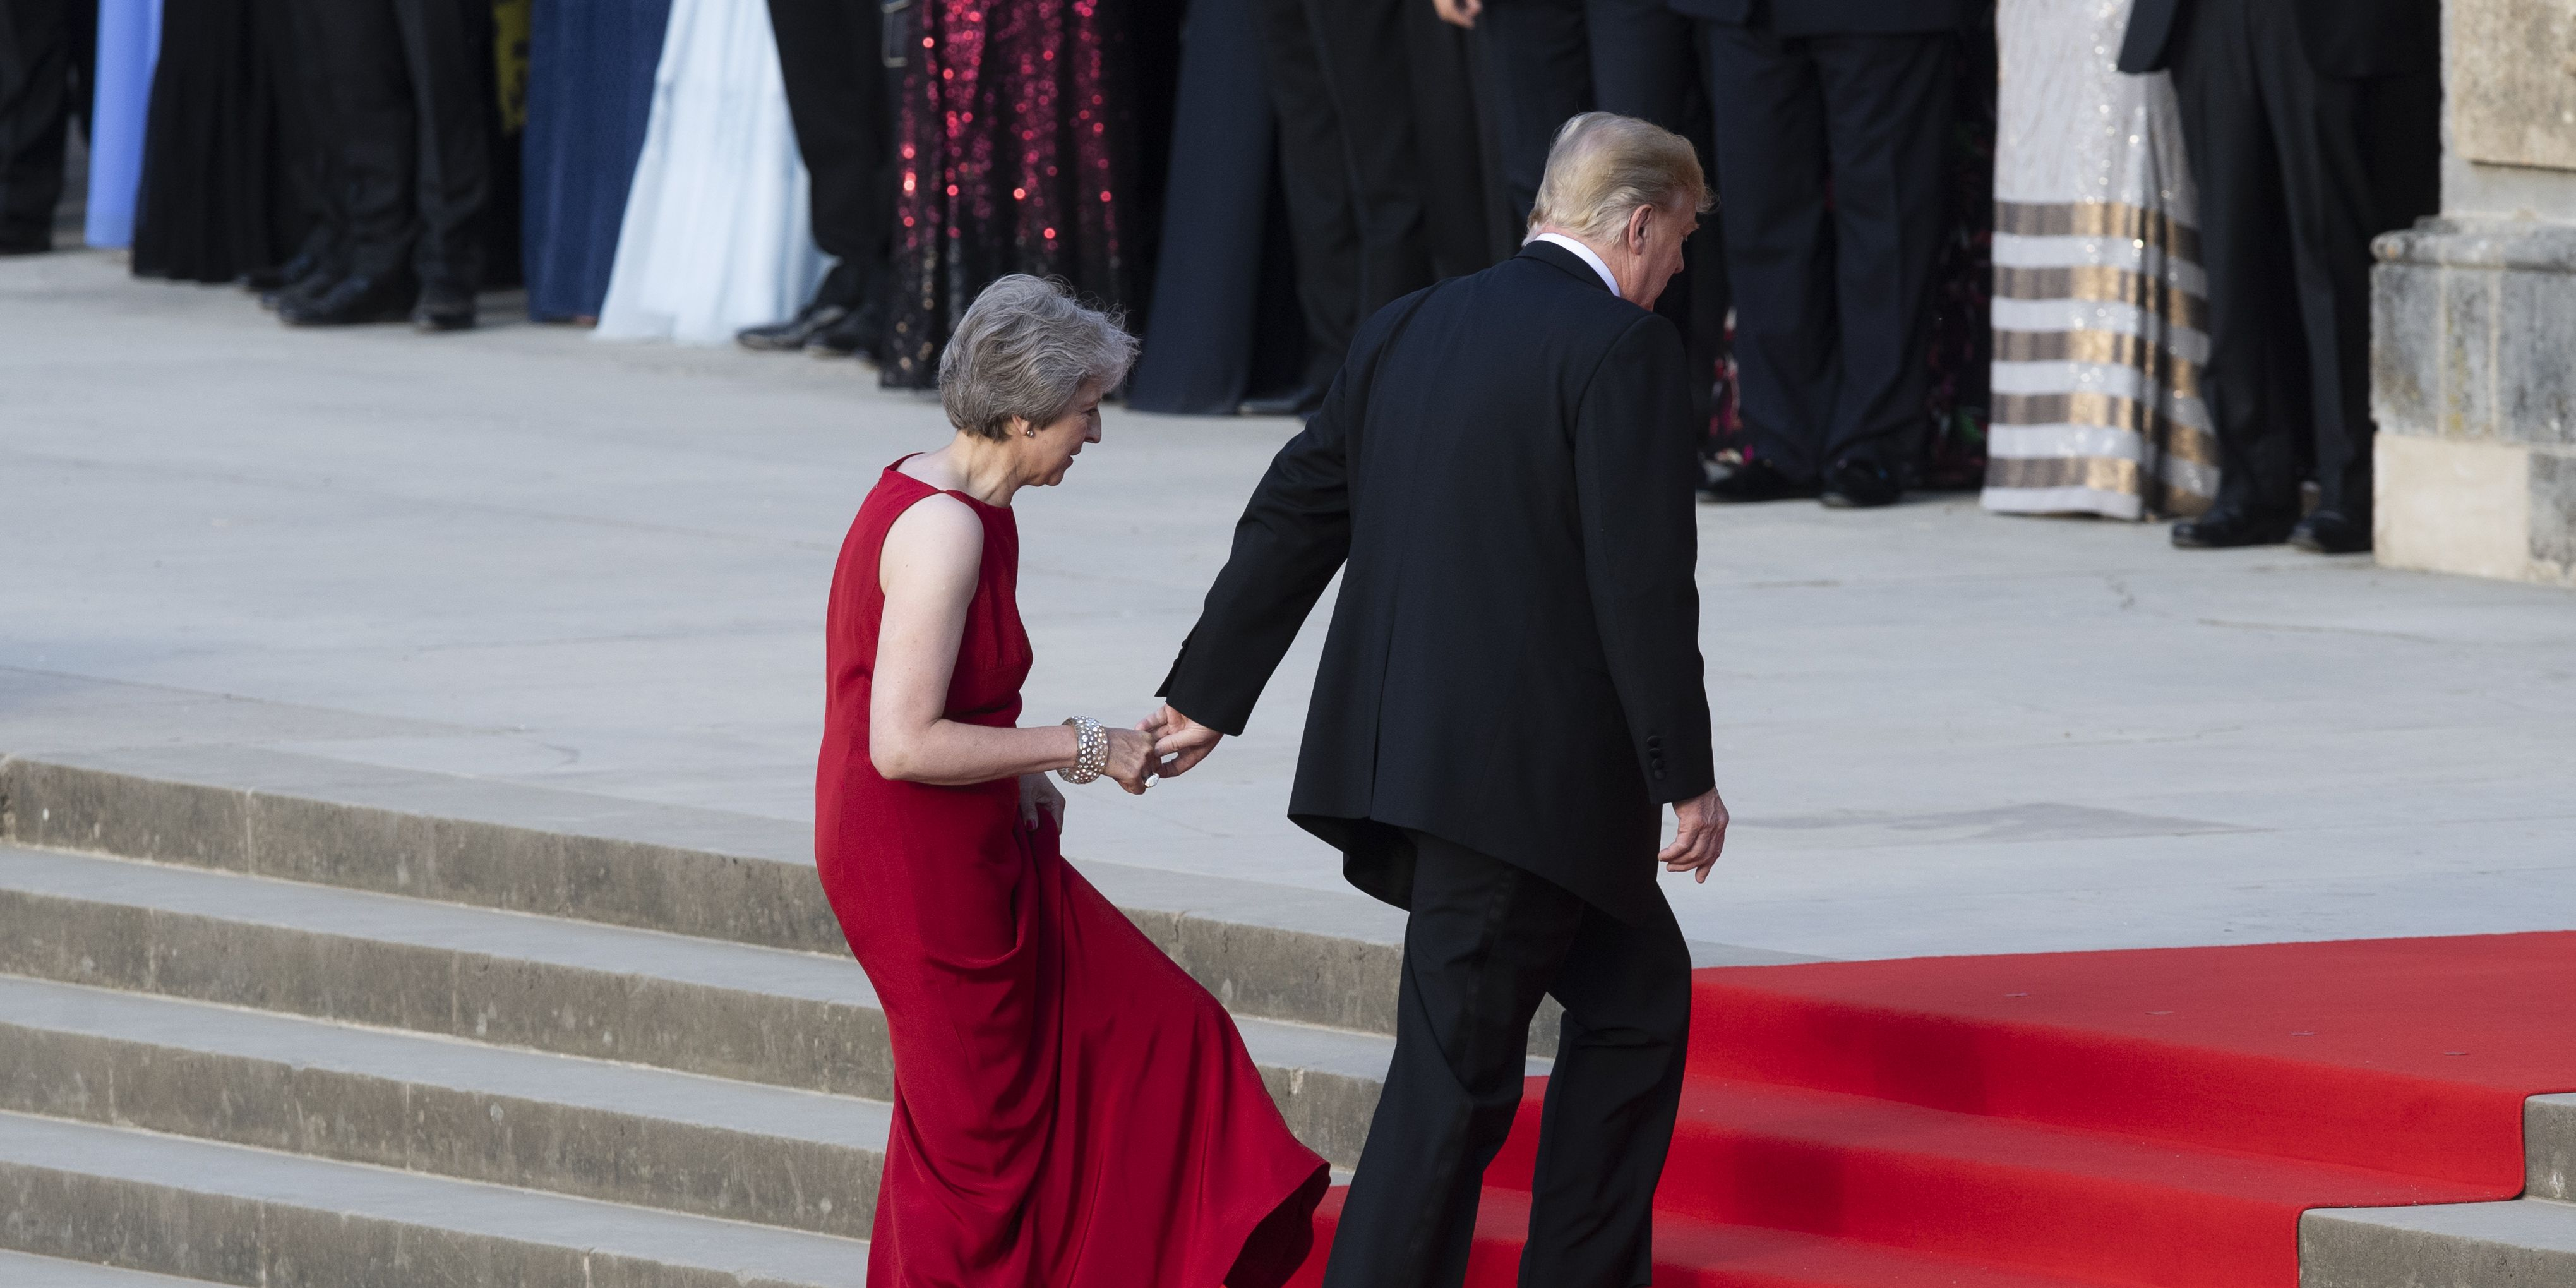 Donald Trump tried held Theresa May's hand again and it's painfully awkward